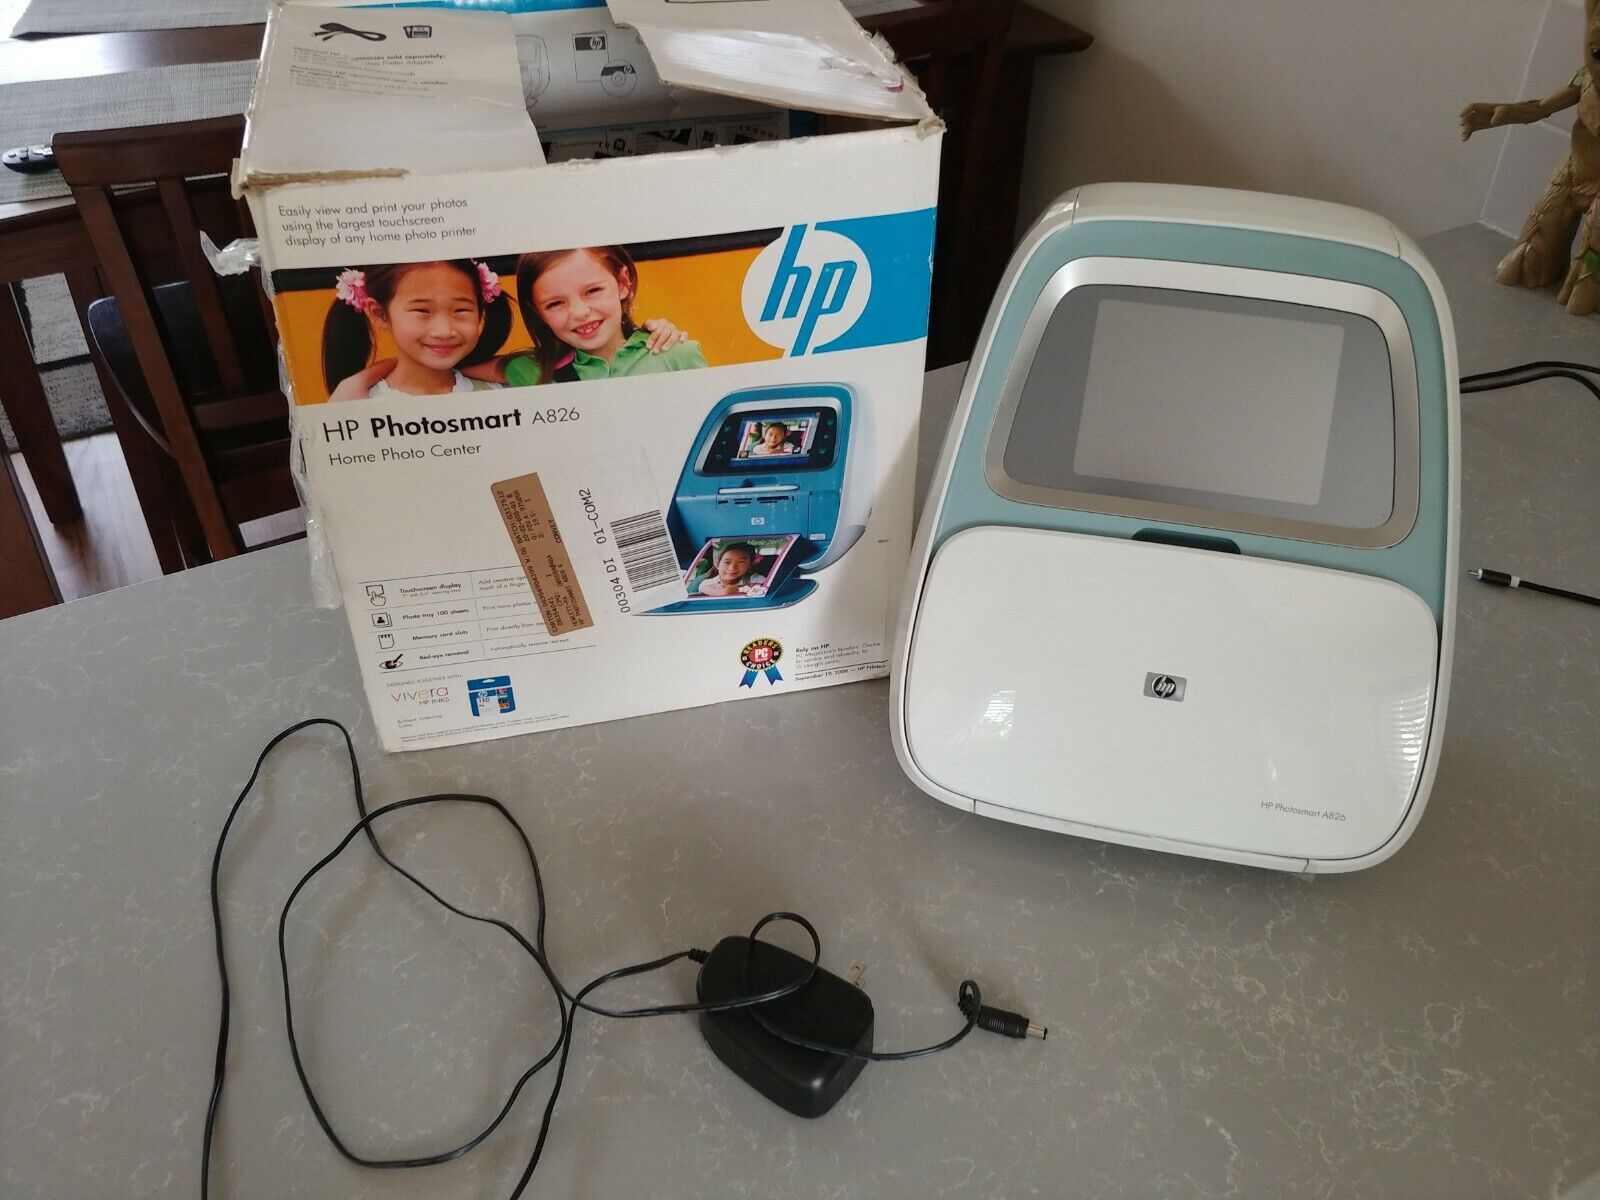 HP Photosmart A826 Digital Photo Inkjet Printer Home Photo Center - $34.99